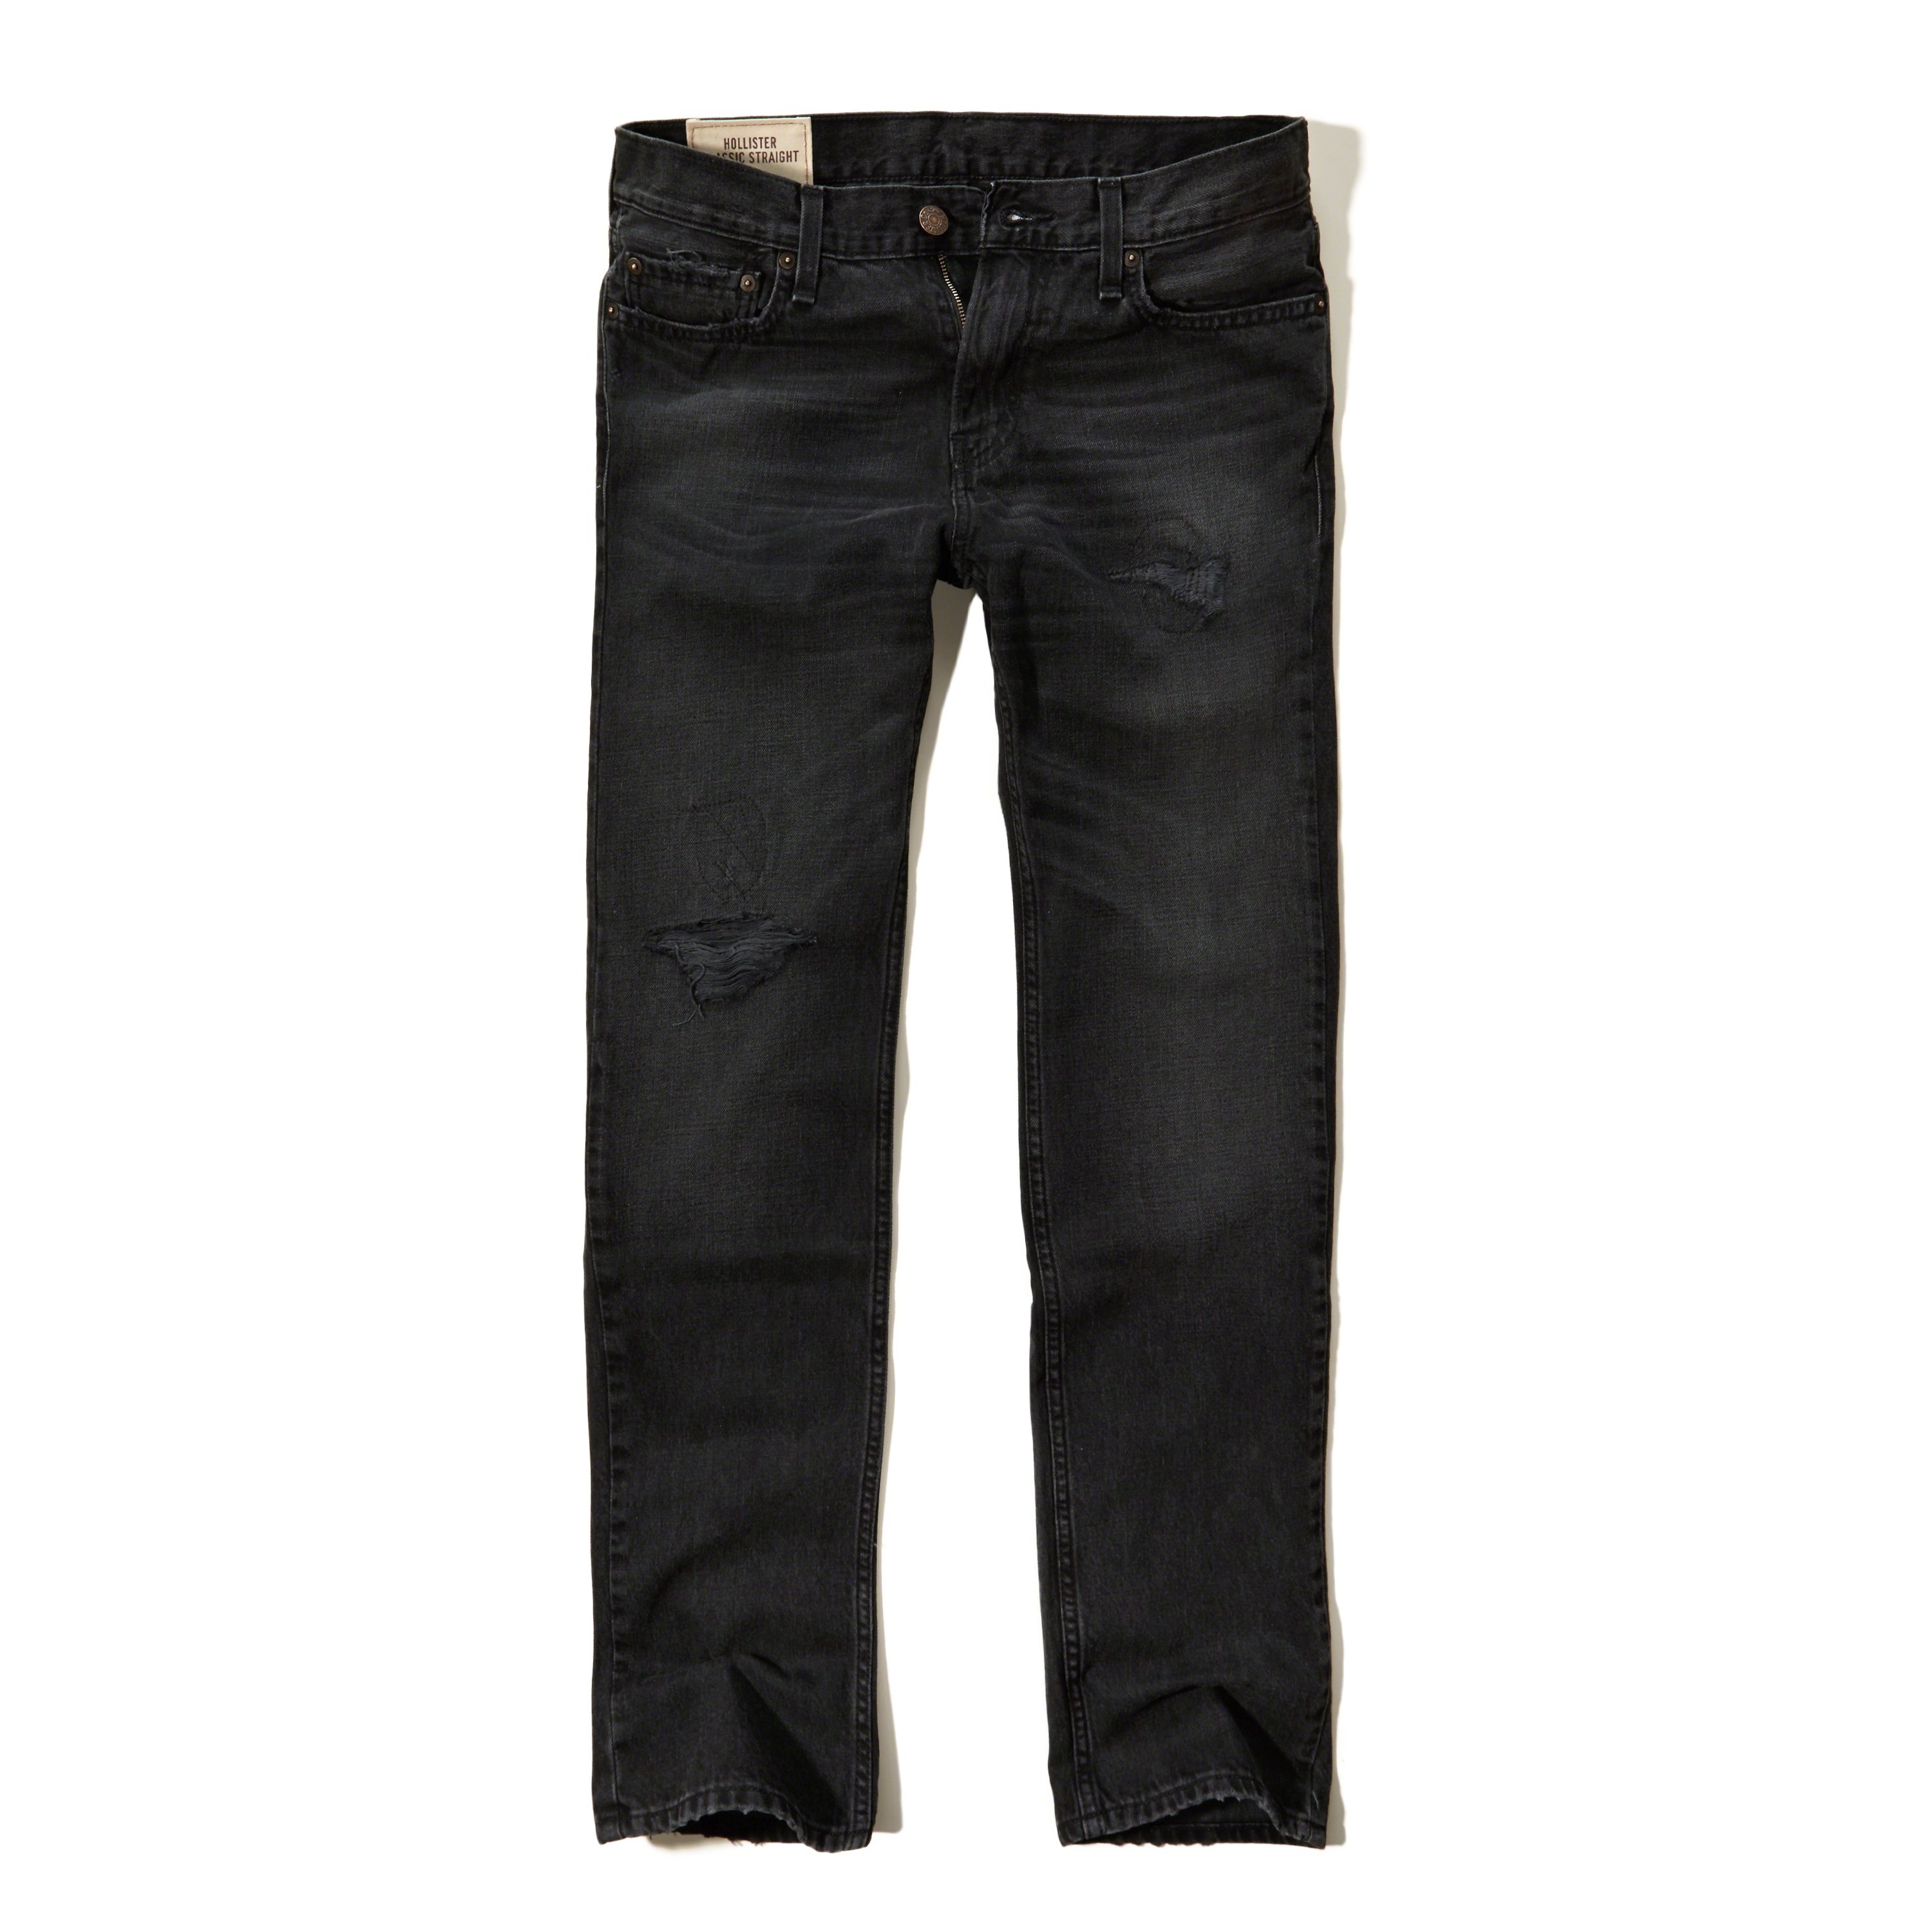 hollister dark jeans for men - photo #9